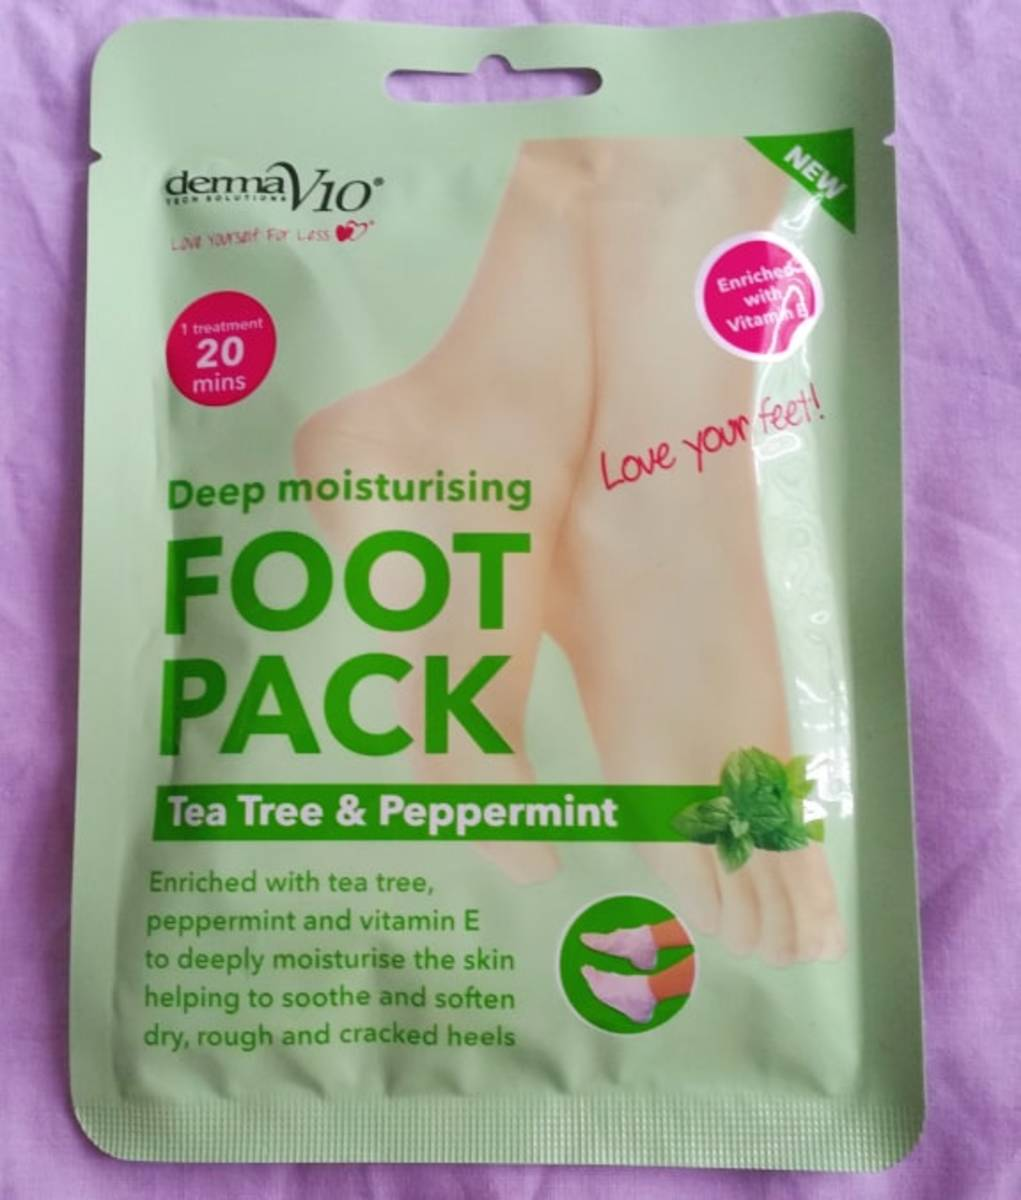 My Review of Derma V10: Tea Tree and Peppermint Deep Moisturising Foot Pack